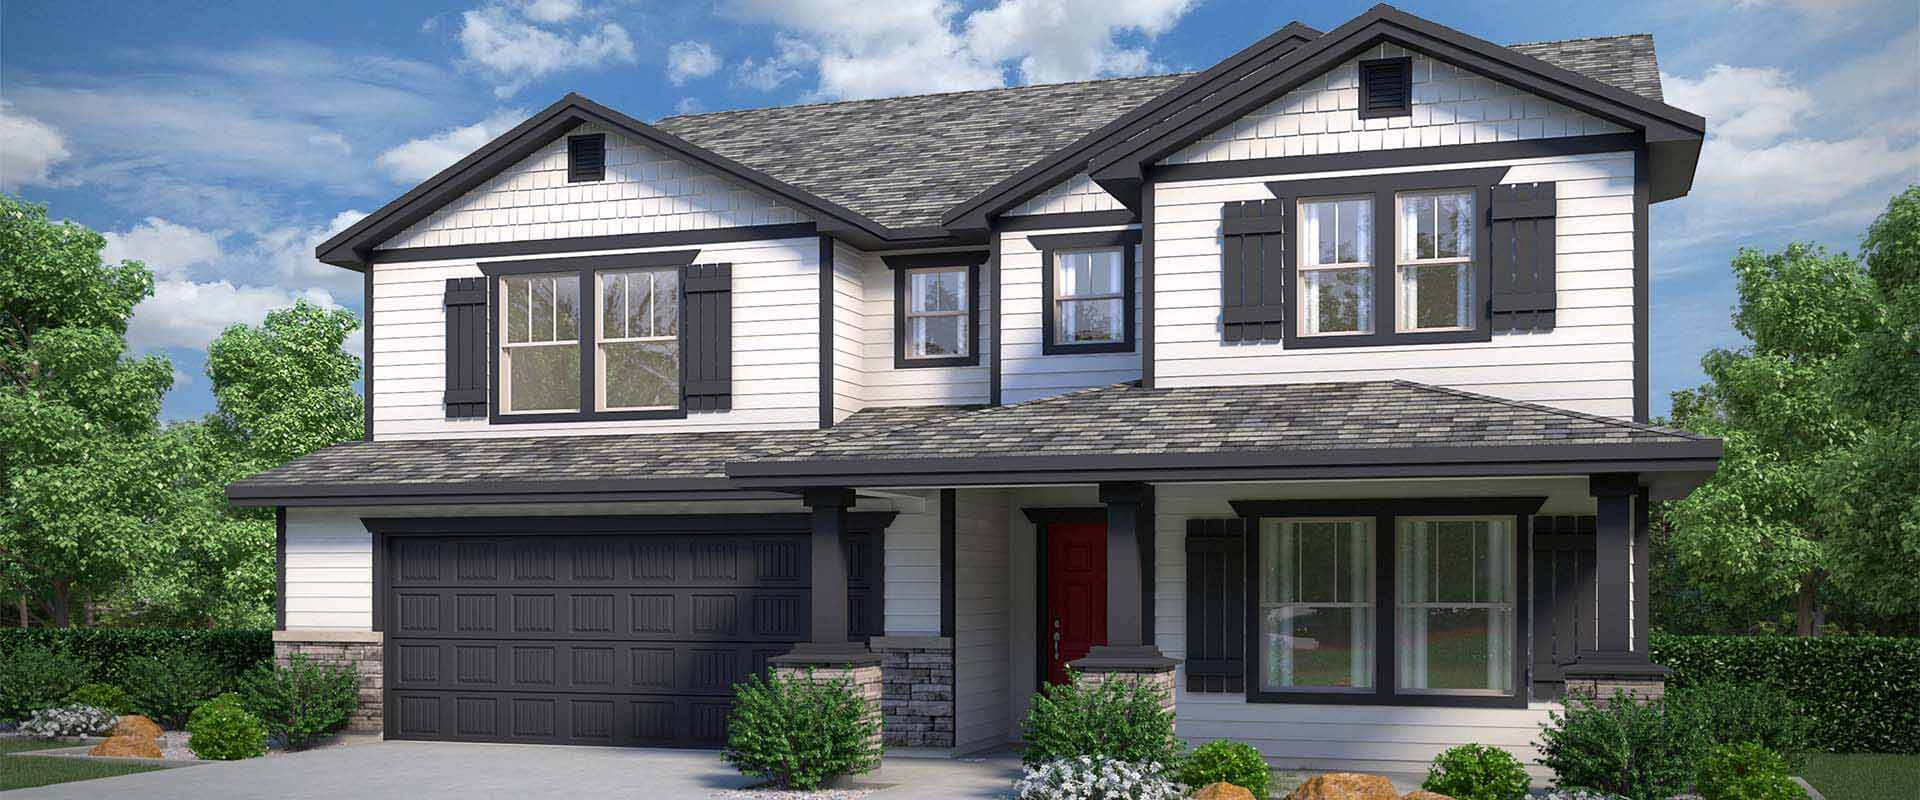 Yosemite-Craftsman-new-homes-boise-idaho-hubble-homes.jpg